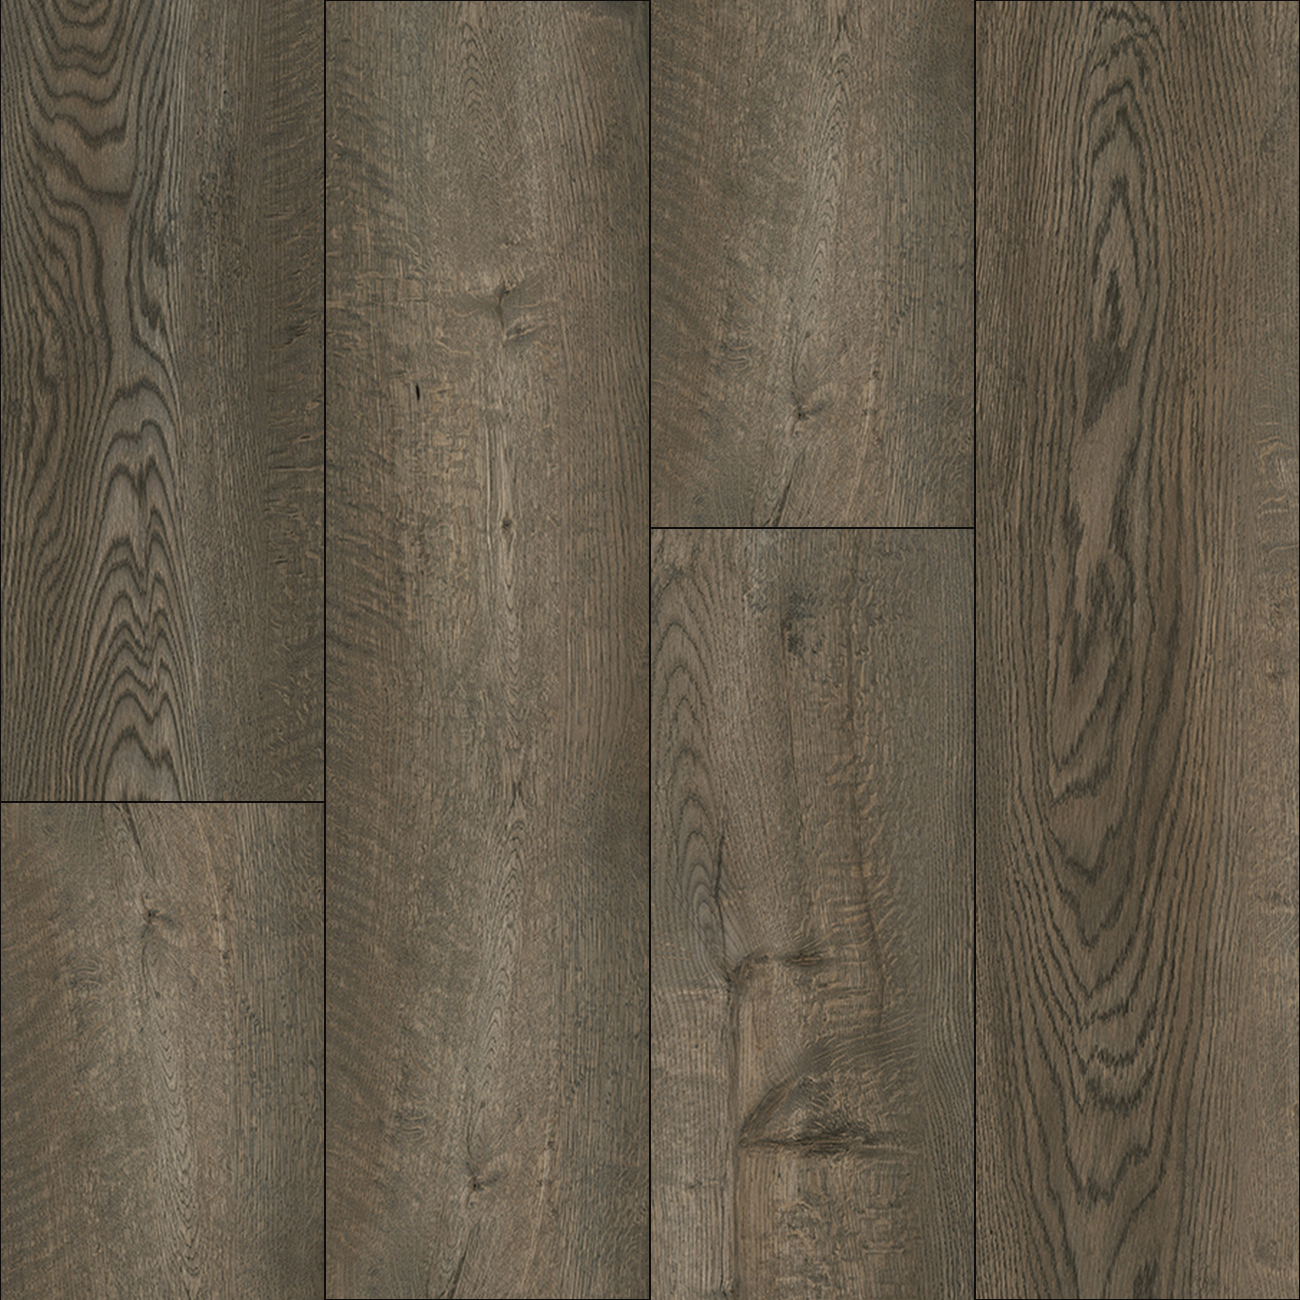 Authentic Plank Aged Oak Vinyl Plank Flooring